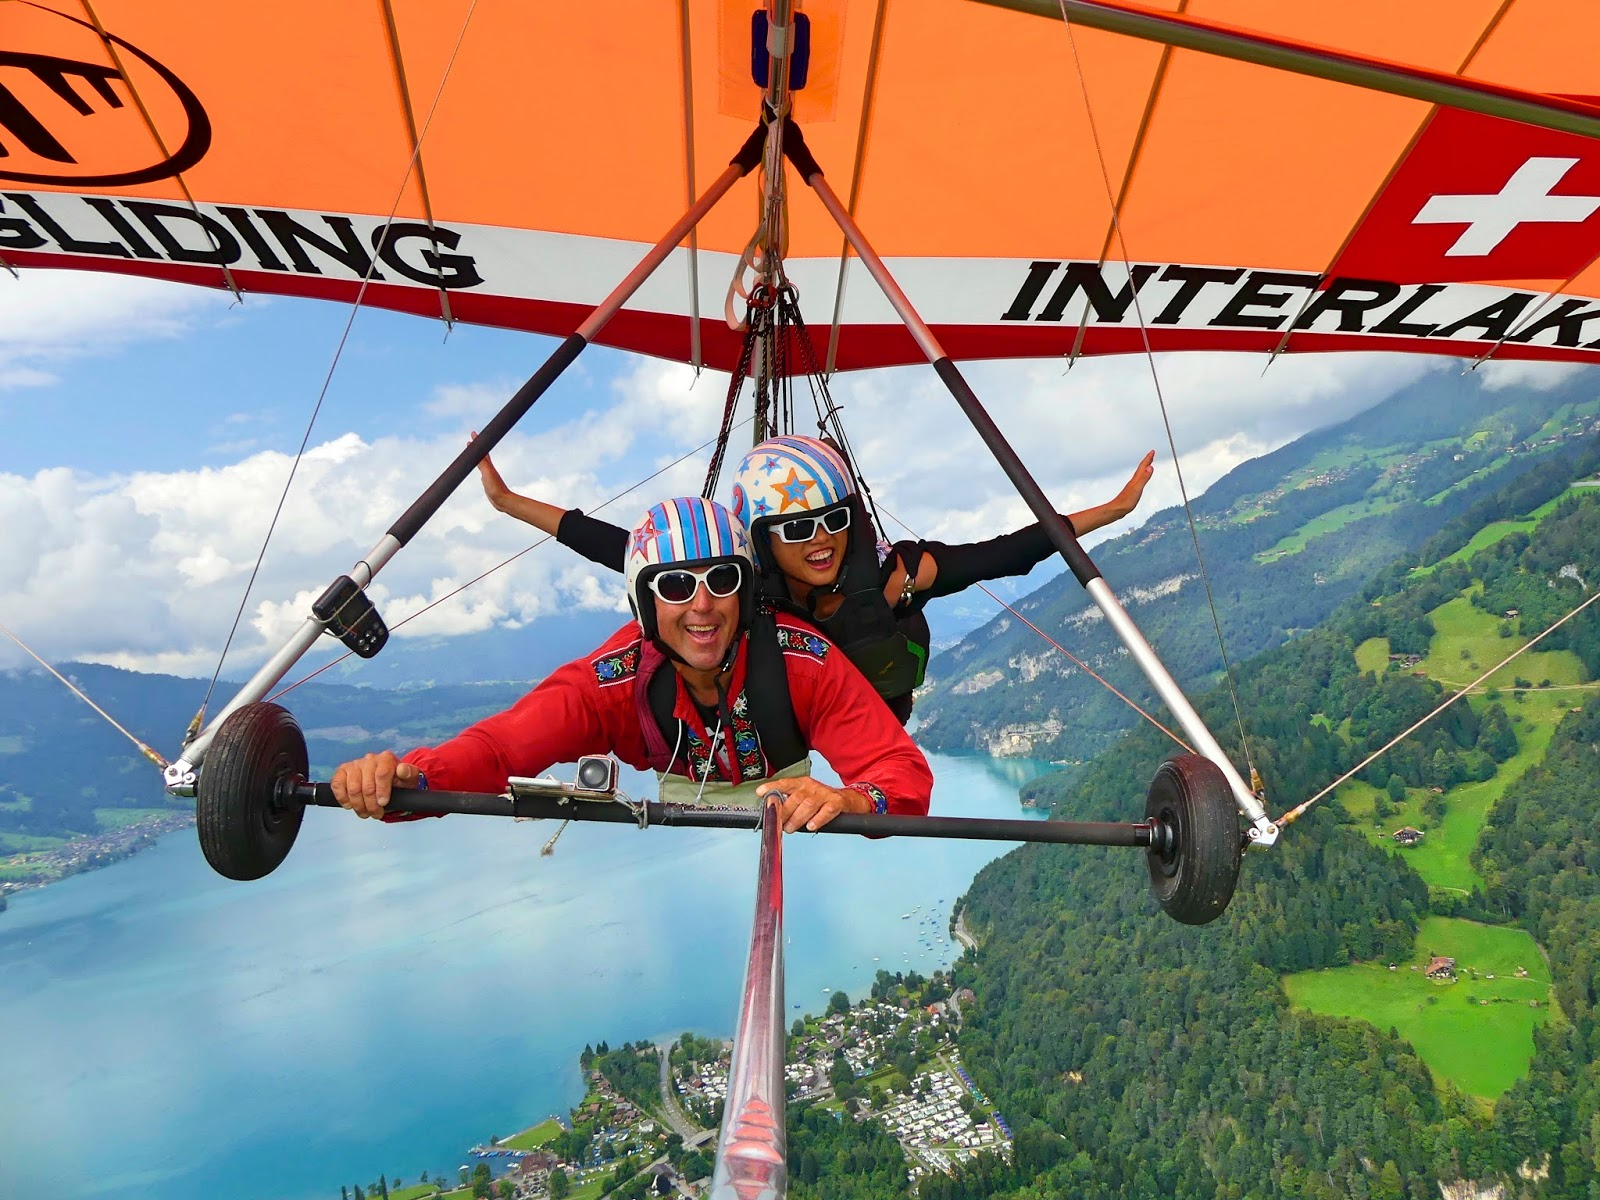 And Hang Gliding In Interlaken With Bernie The Birdman From Hangglidinginterlaken Is Truly Coolest Thing Ive Done Up To Date